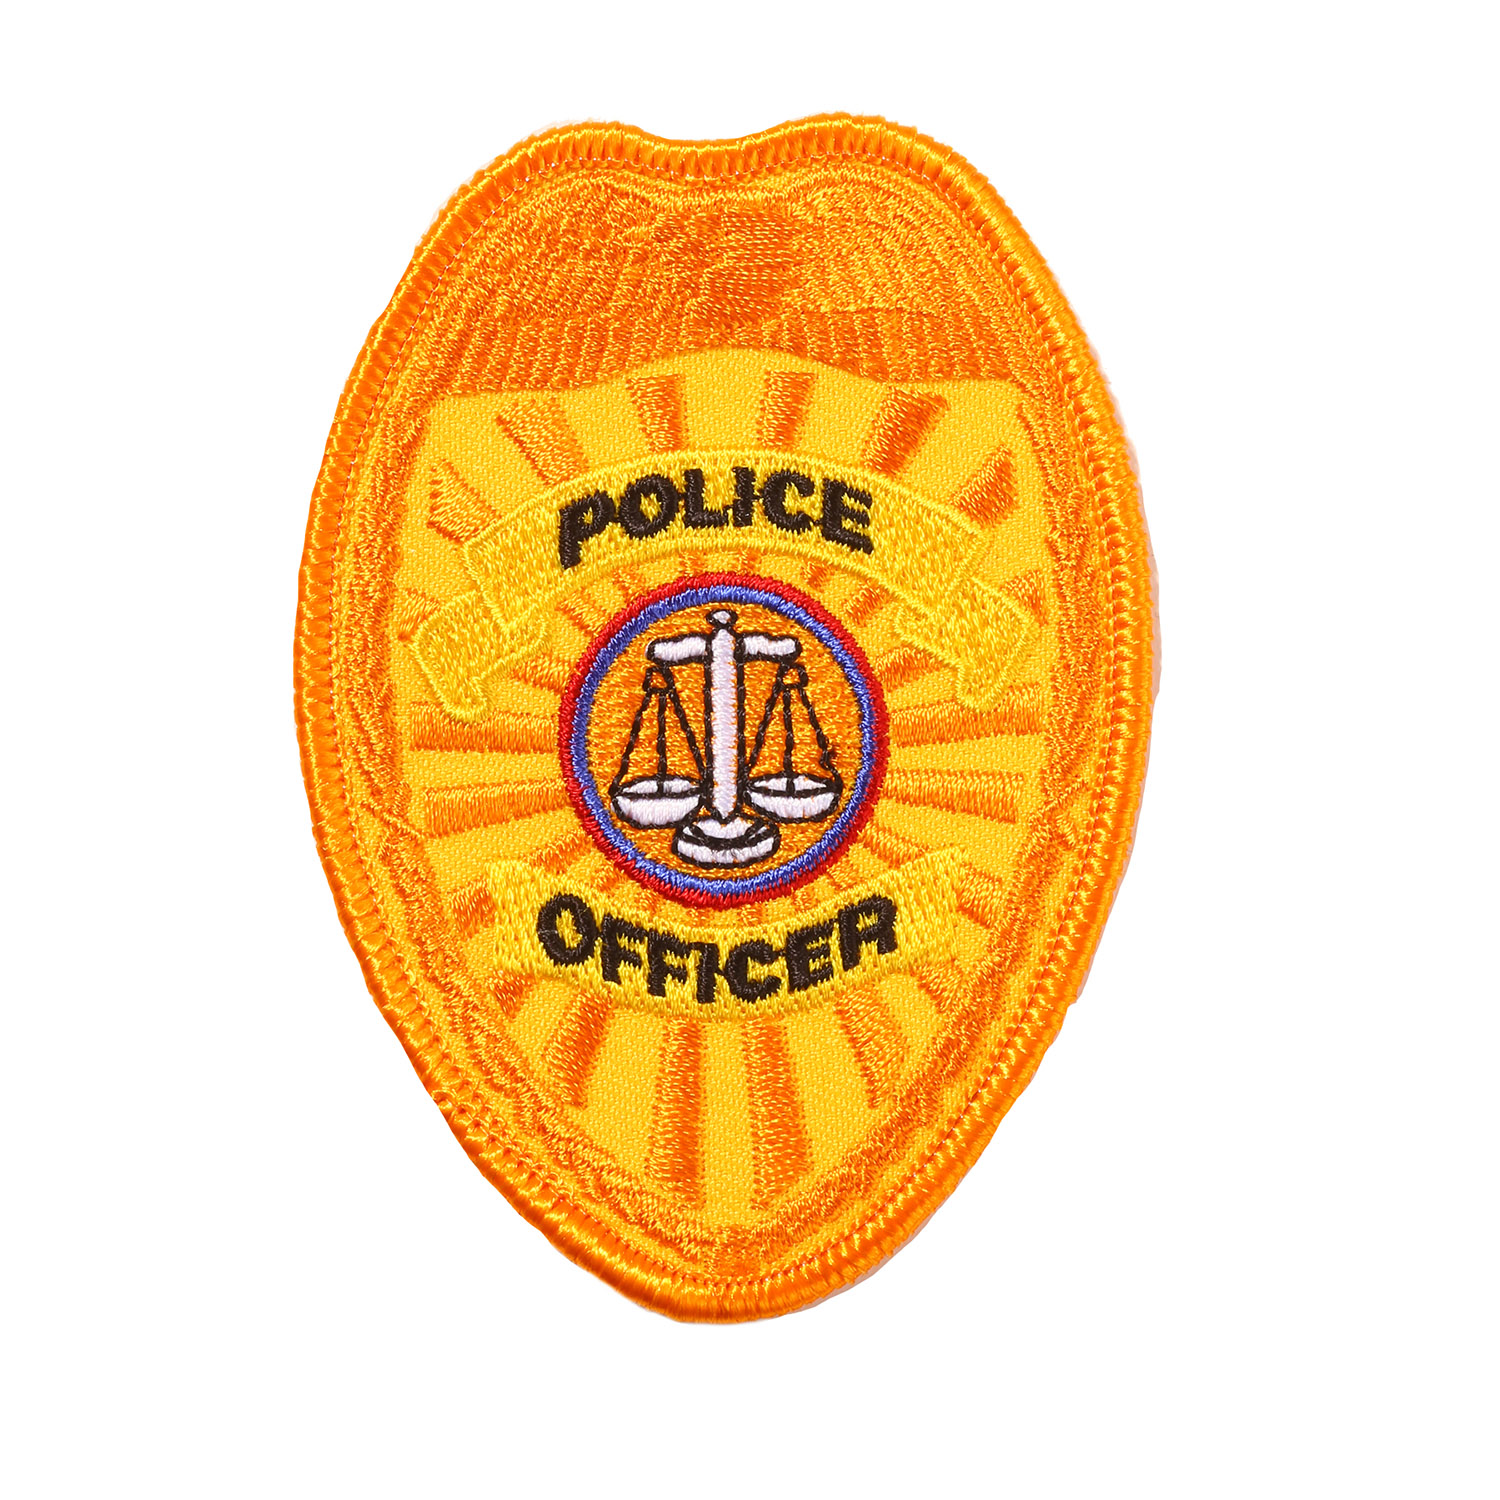 Penn Emblem Police Officer Badge Emblem (Standard Finish)